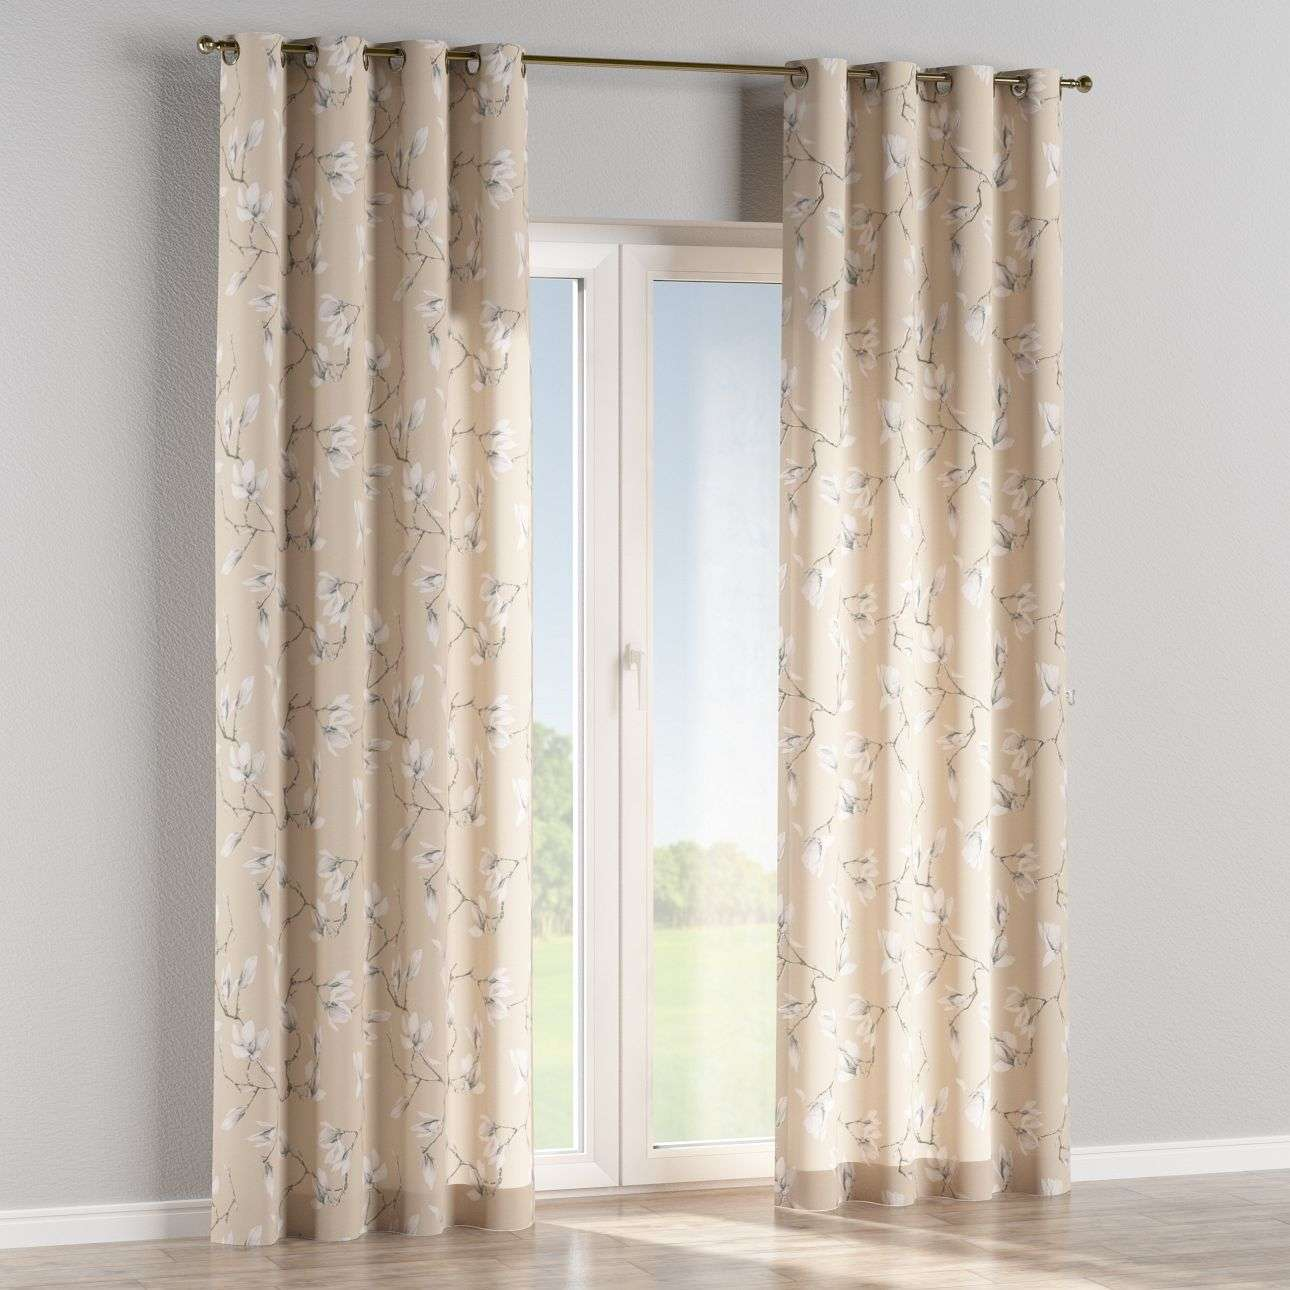 Eyelet curtains in collection Flowers, fabric: 311-12